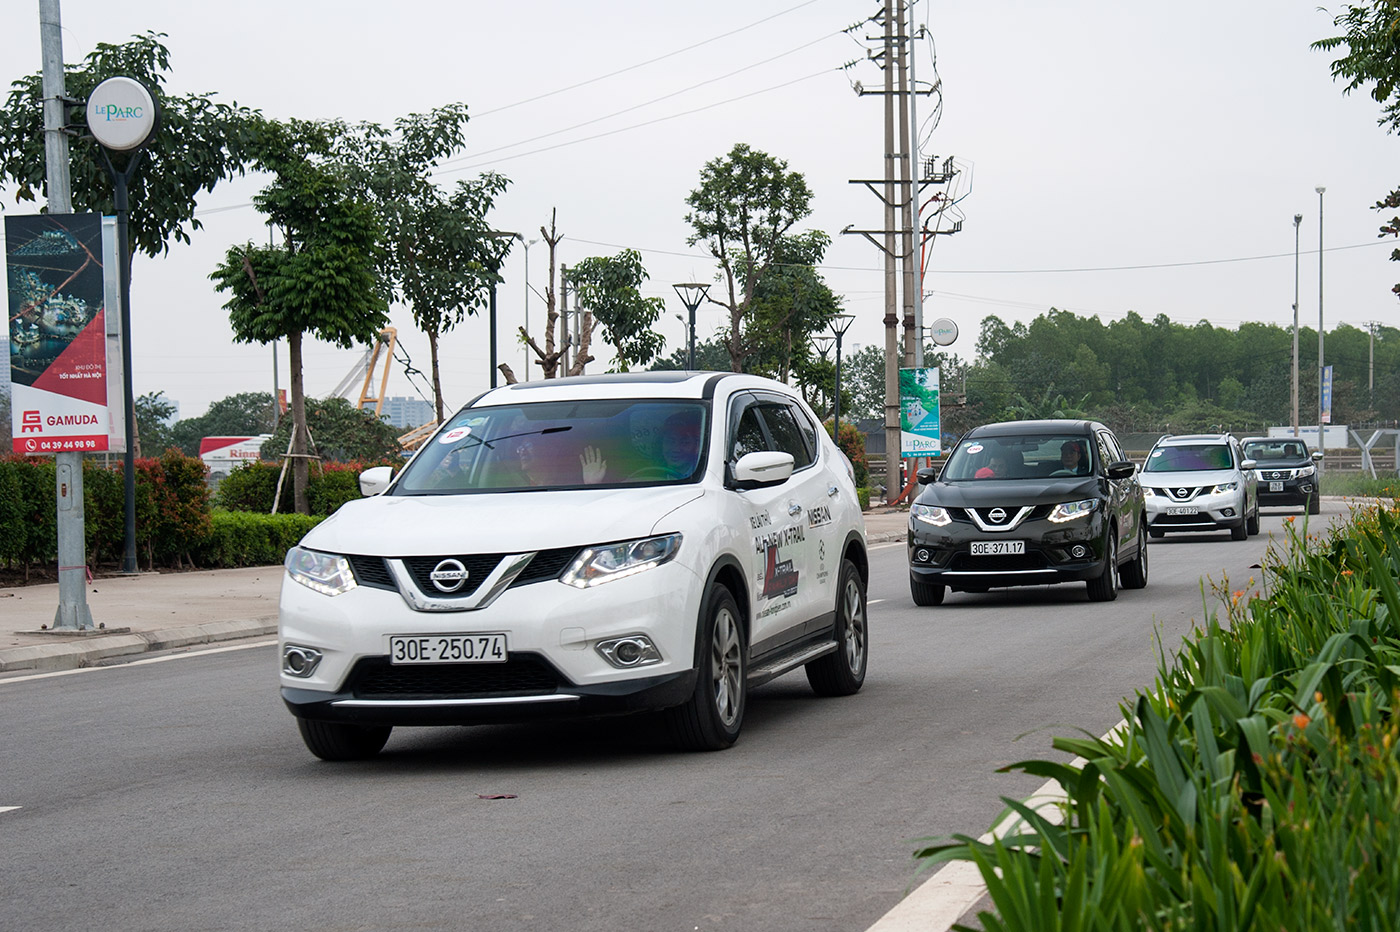 nissan-xtrail-family-day-1.jpg